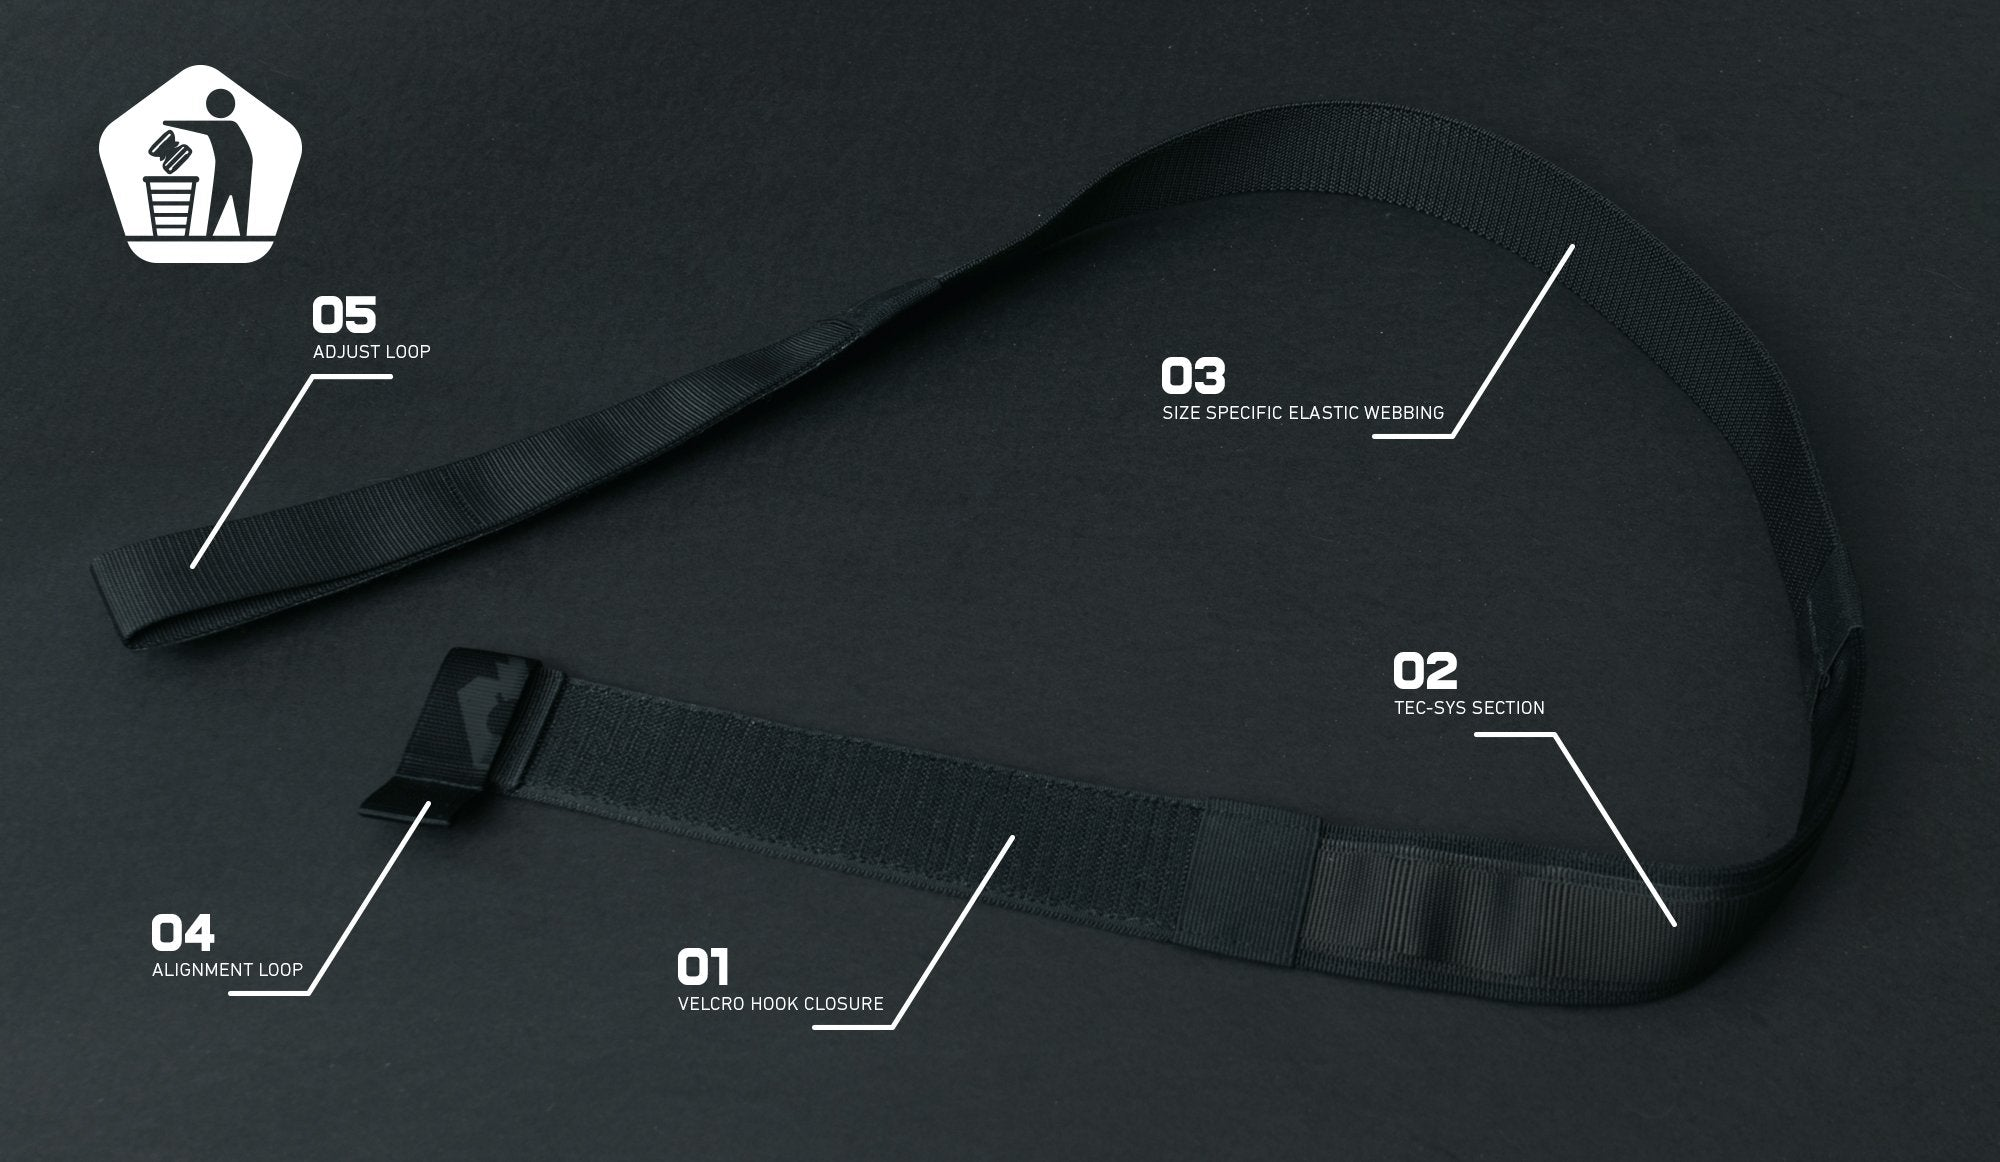 BELT SECTIONS